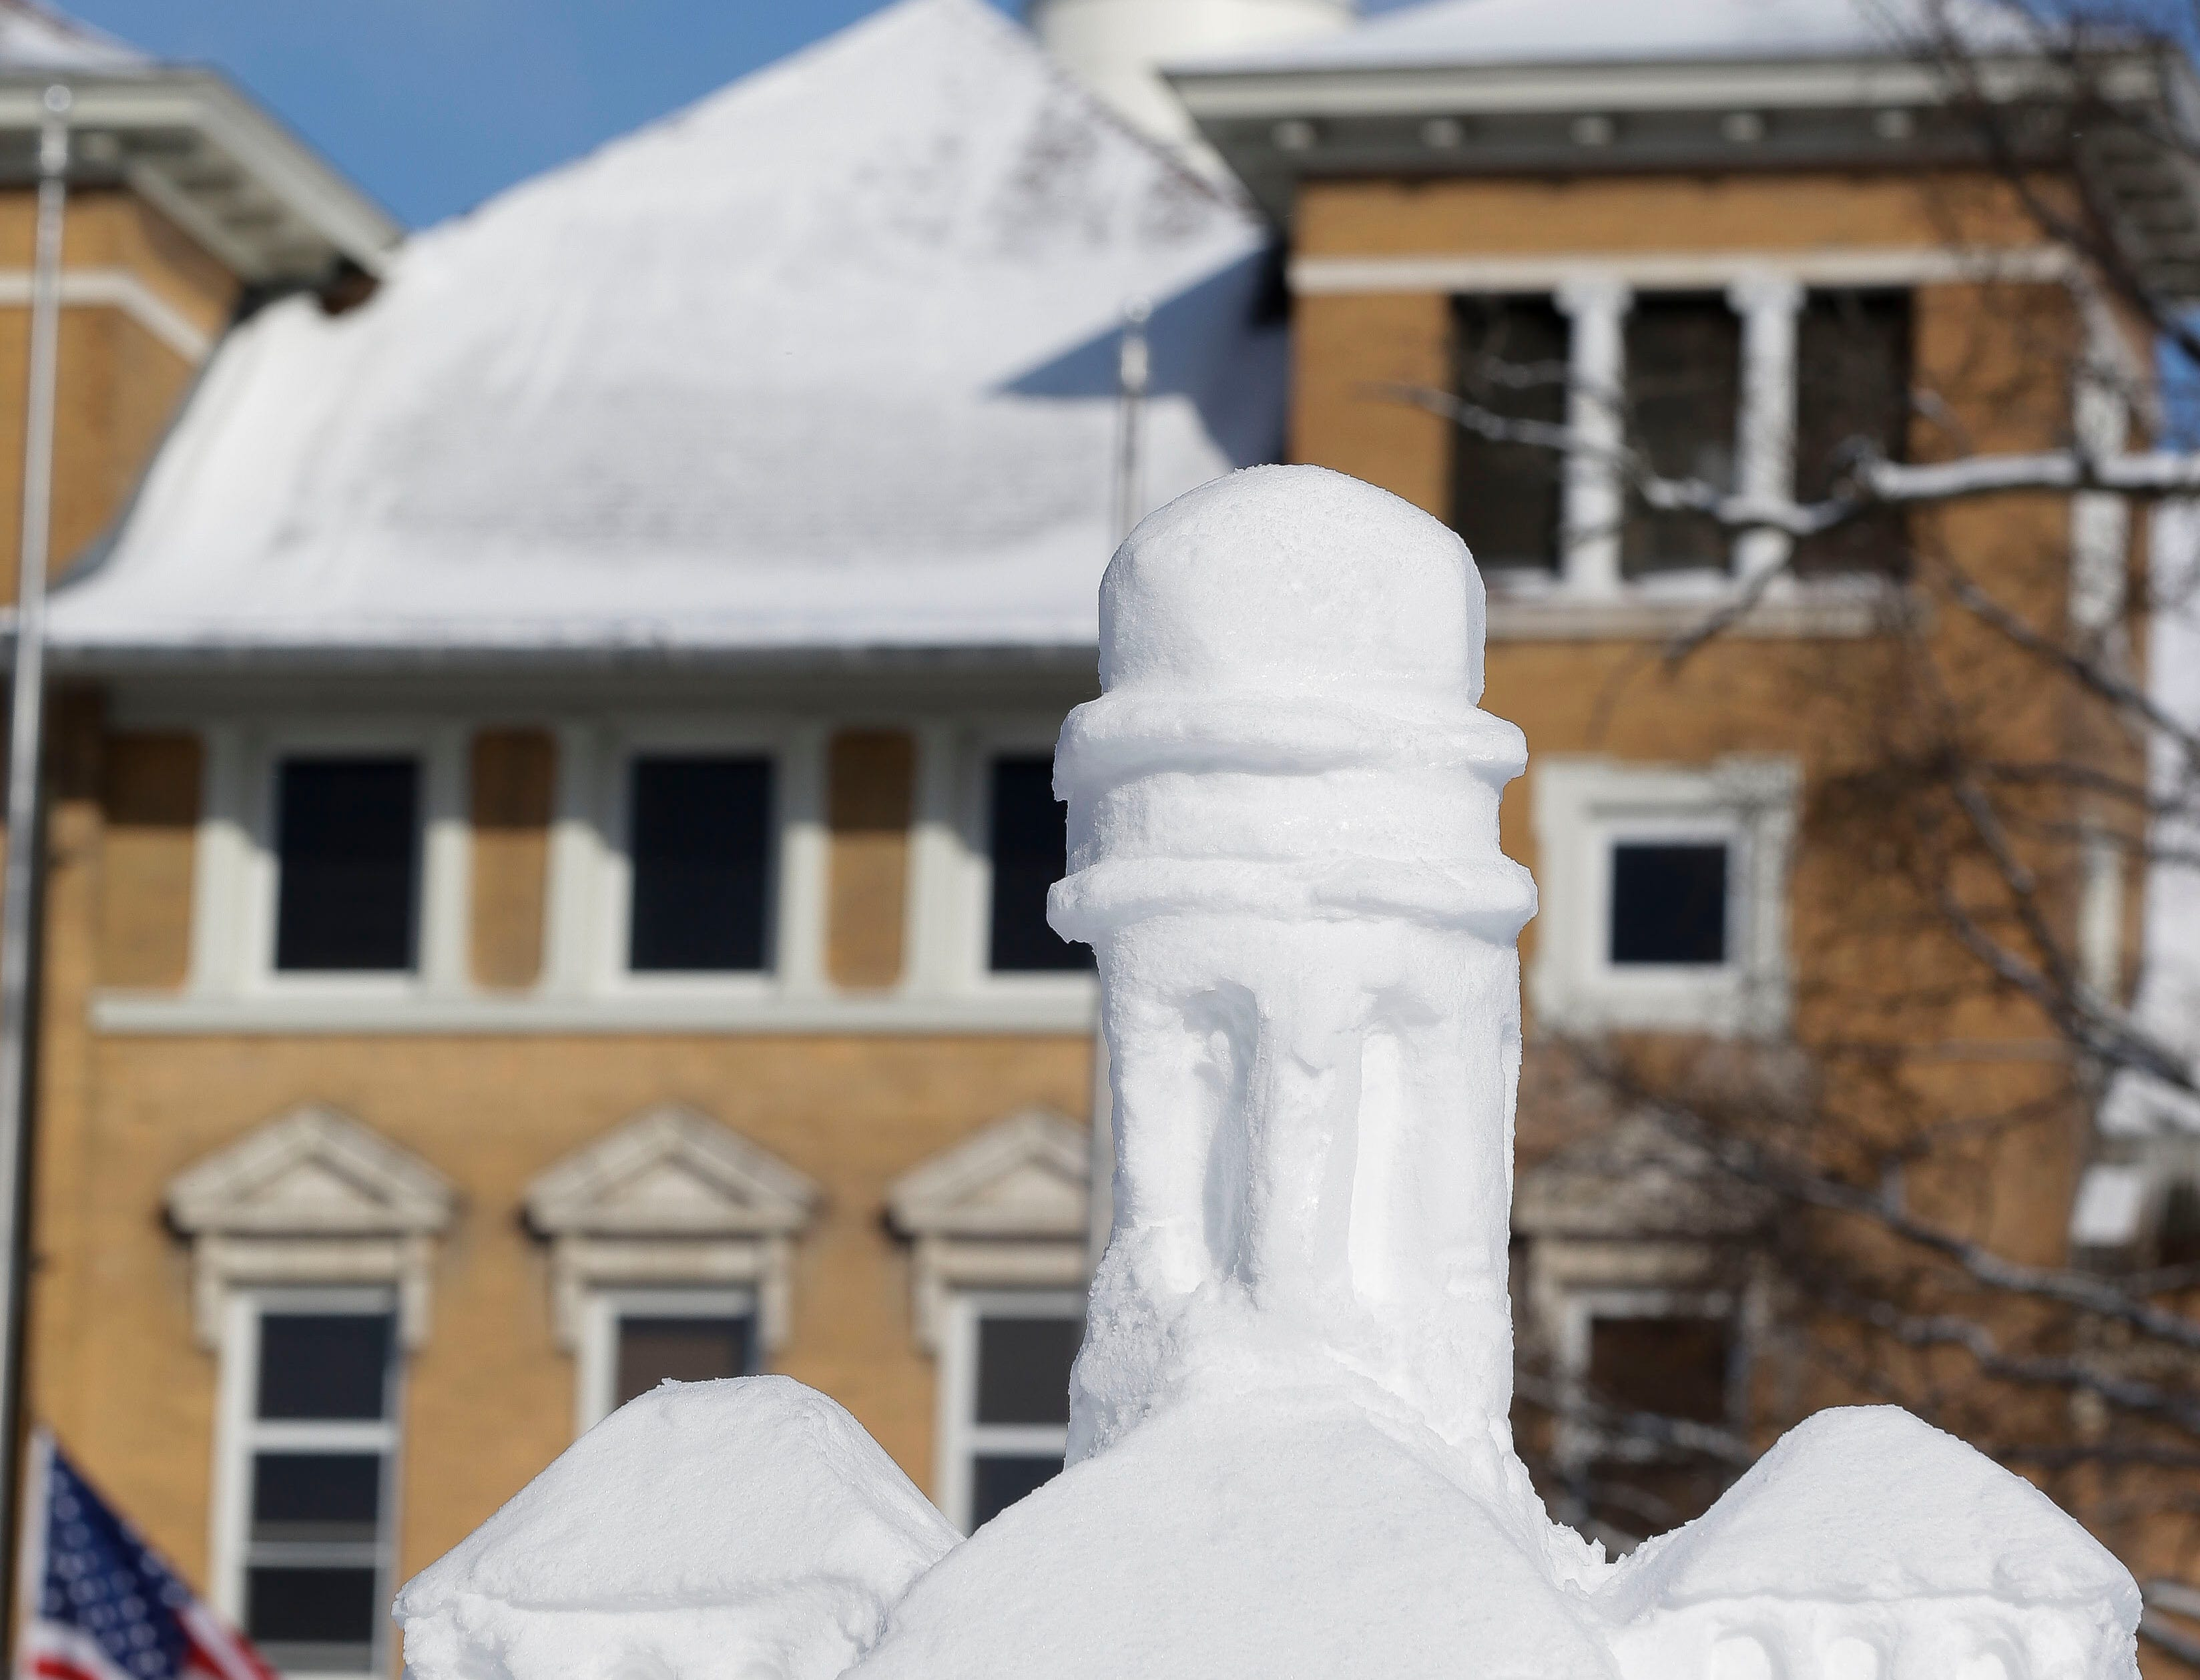 A snow sculpture of Old Main is seen on Friday, February 8, 2019, on the UWSP campus in Stevens Point, Wis. The sculpture, built by local artist Jef Schobert, is meant to commemorate UWSP's 125th anniversary.Tork Mason/USA TODAY NETWORK-Wisconsin